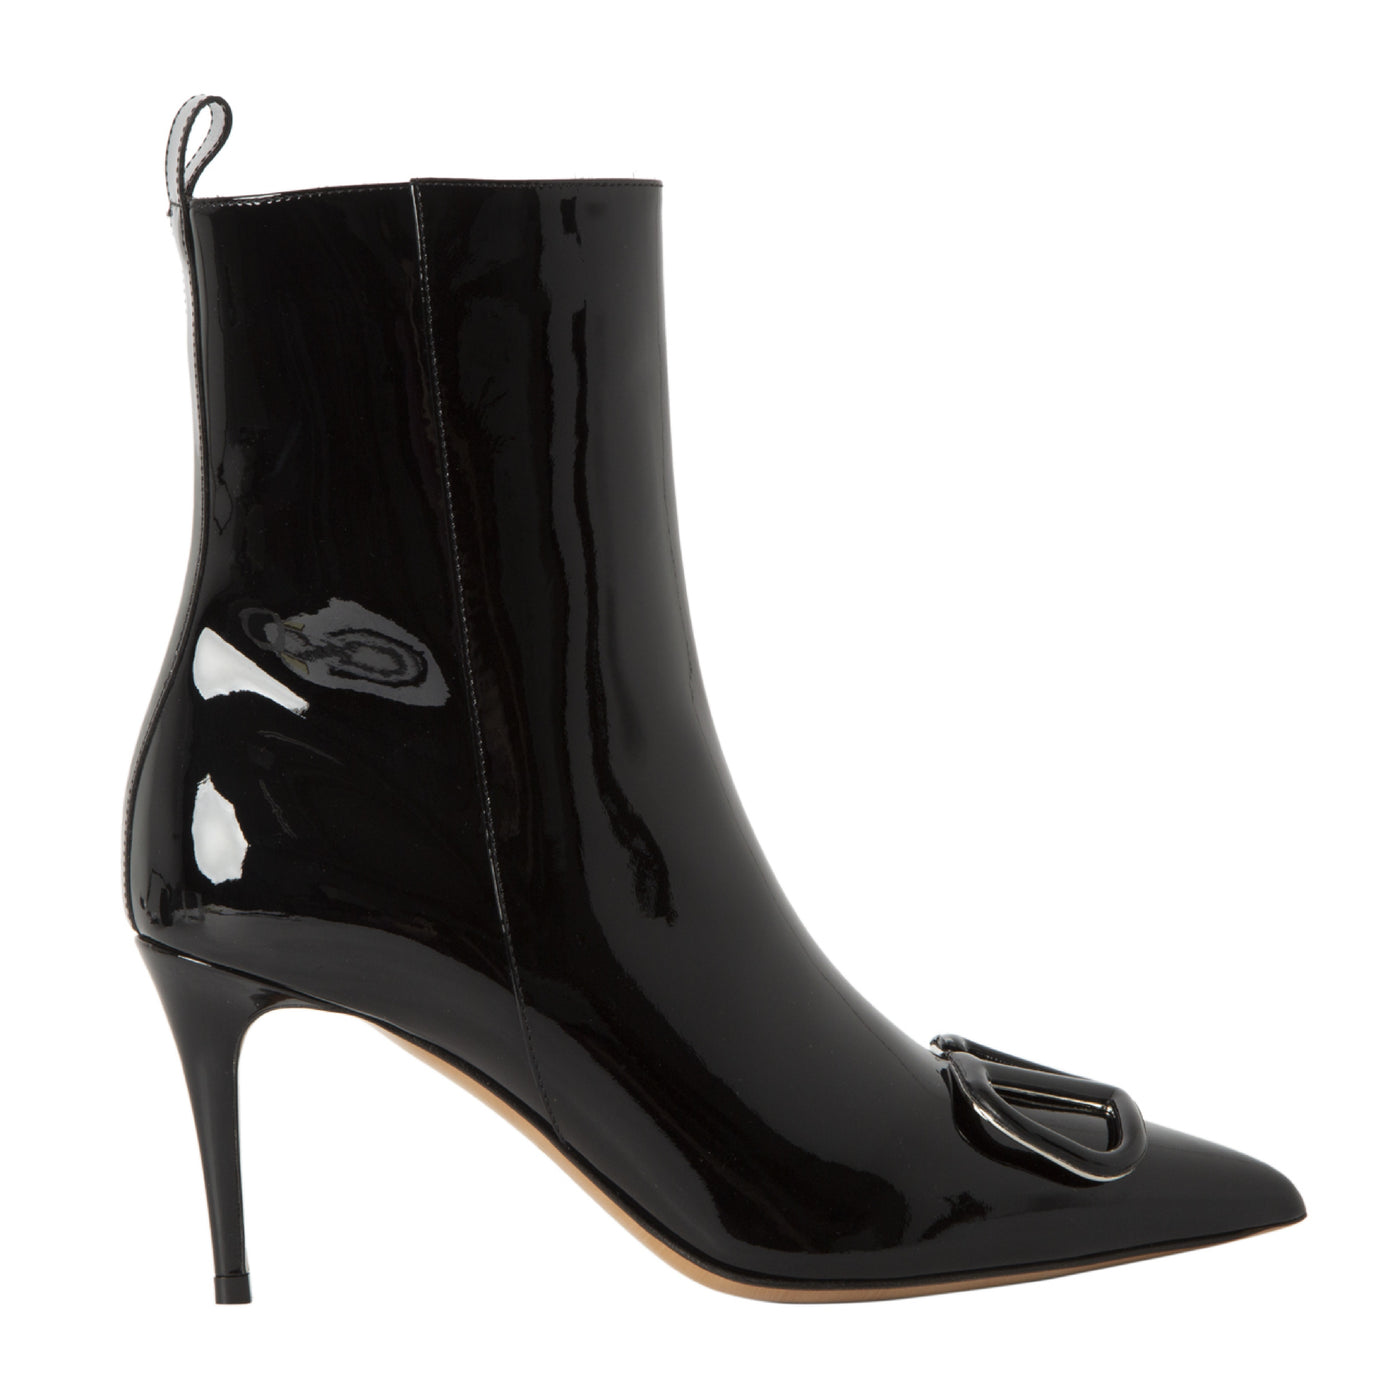 Load image into Gallery viewer, VALENTINO PATENT LEATHER BOOTIE BLACK